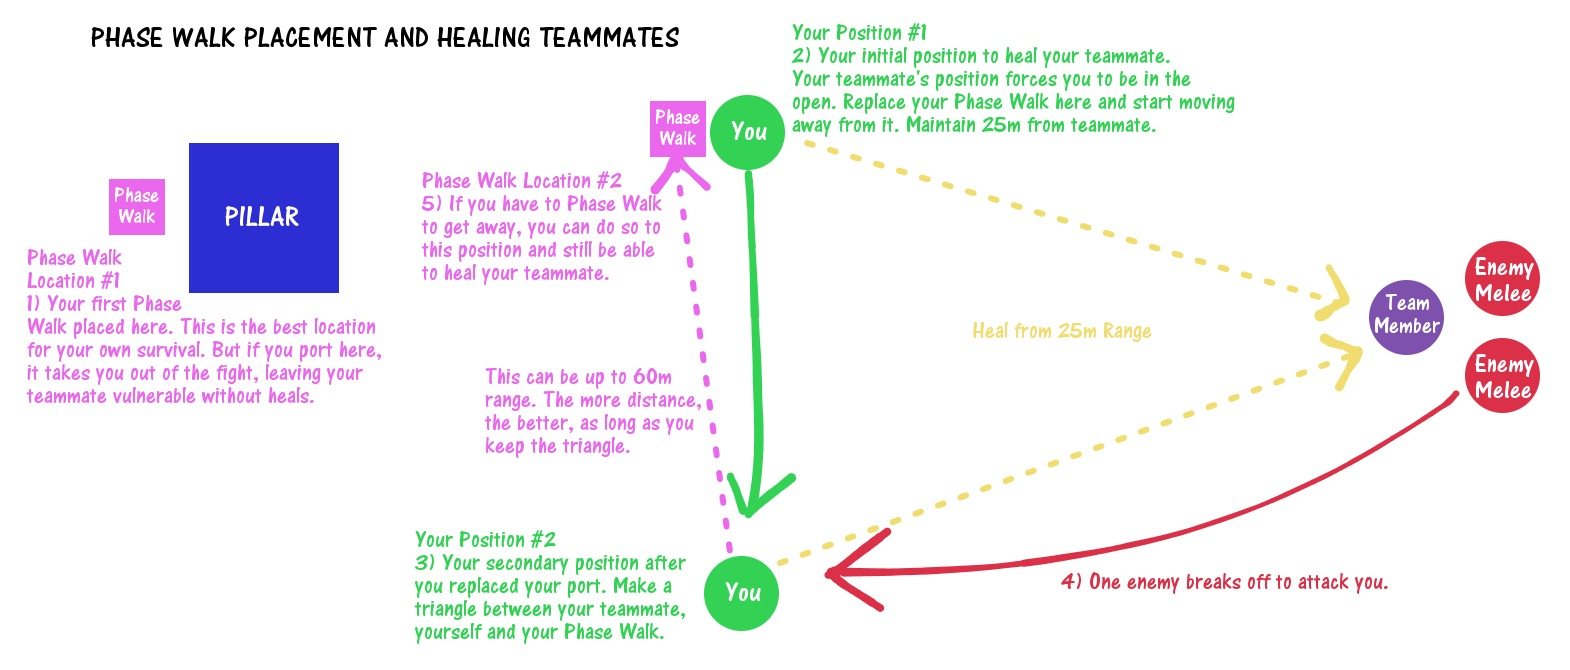 Phase Walk Placement and Healing Teammates